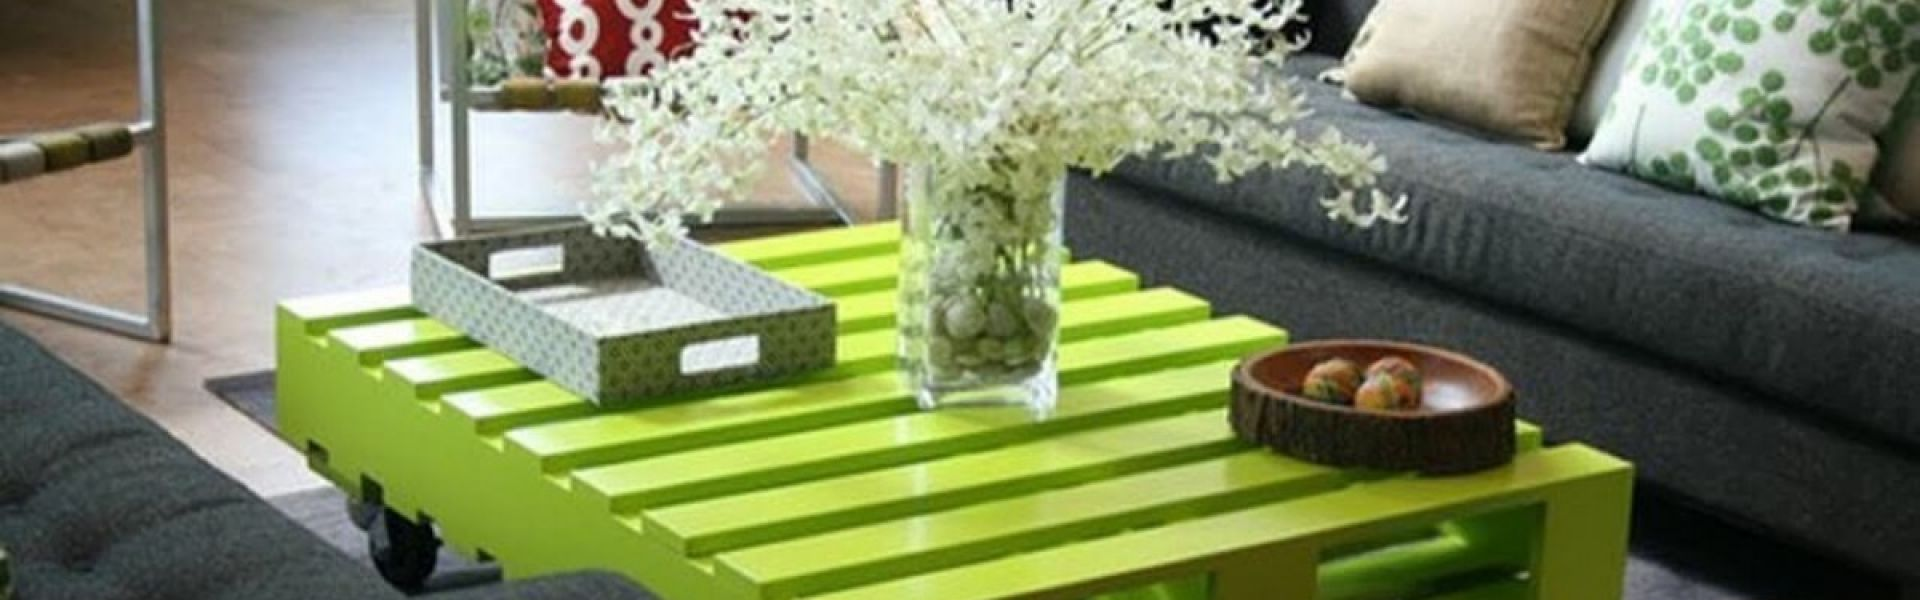 Clasimex.com 125 MEJORES IDEAS DE DECORACION CON PALETS Wood Topics